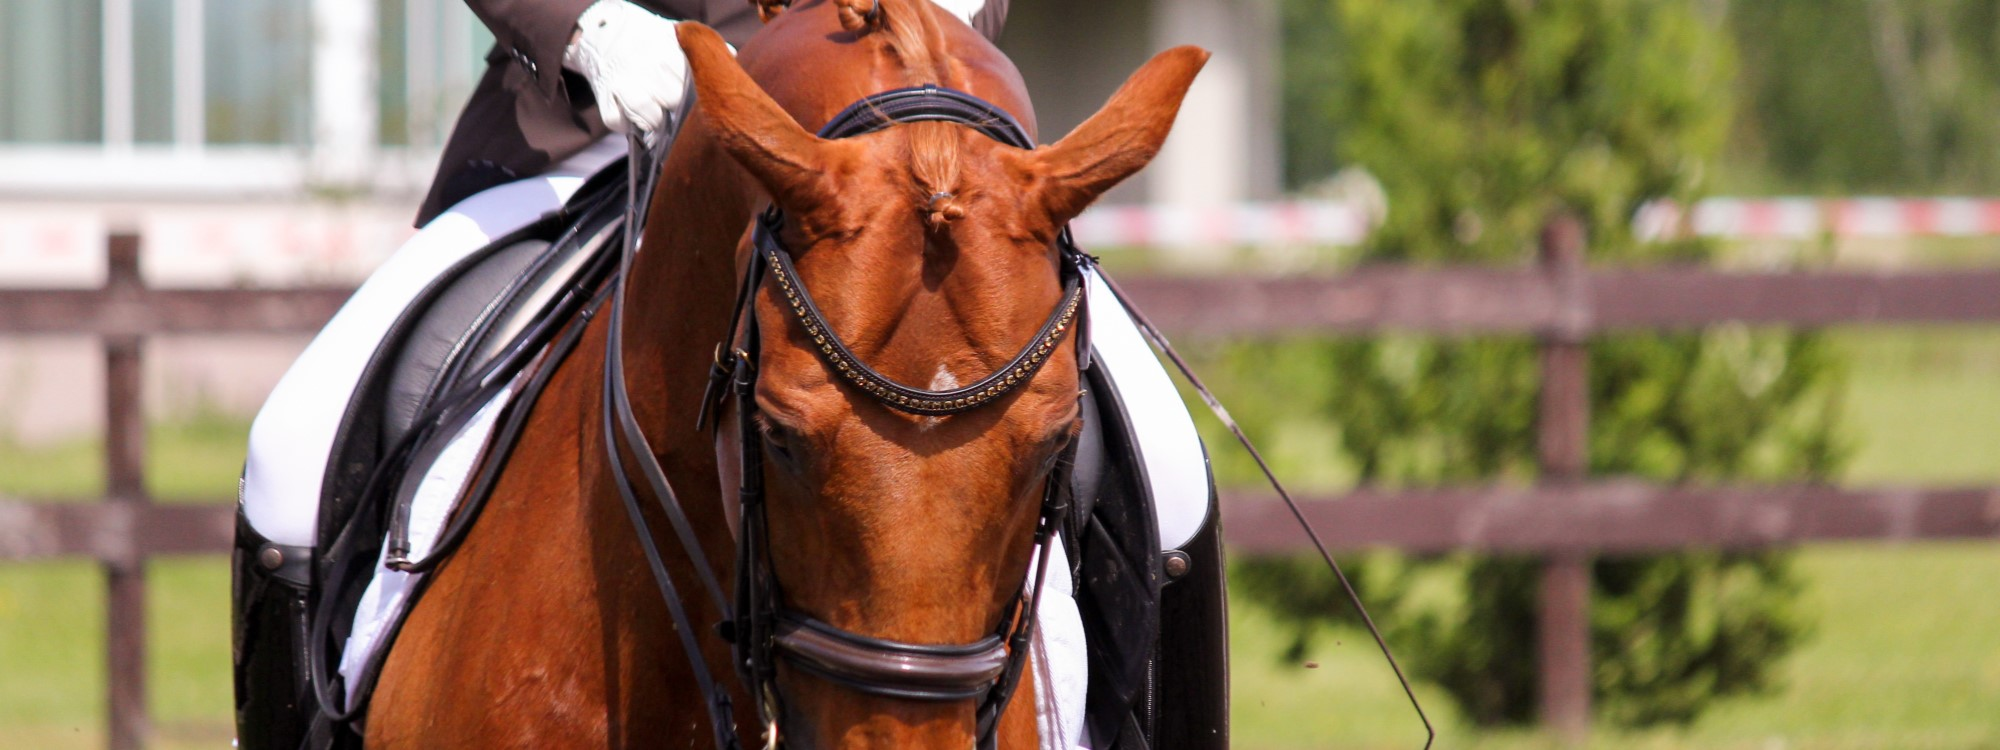 Chestnut horse competing in dressage